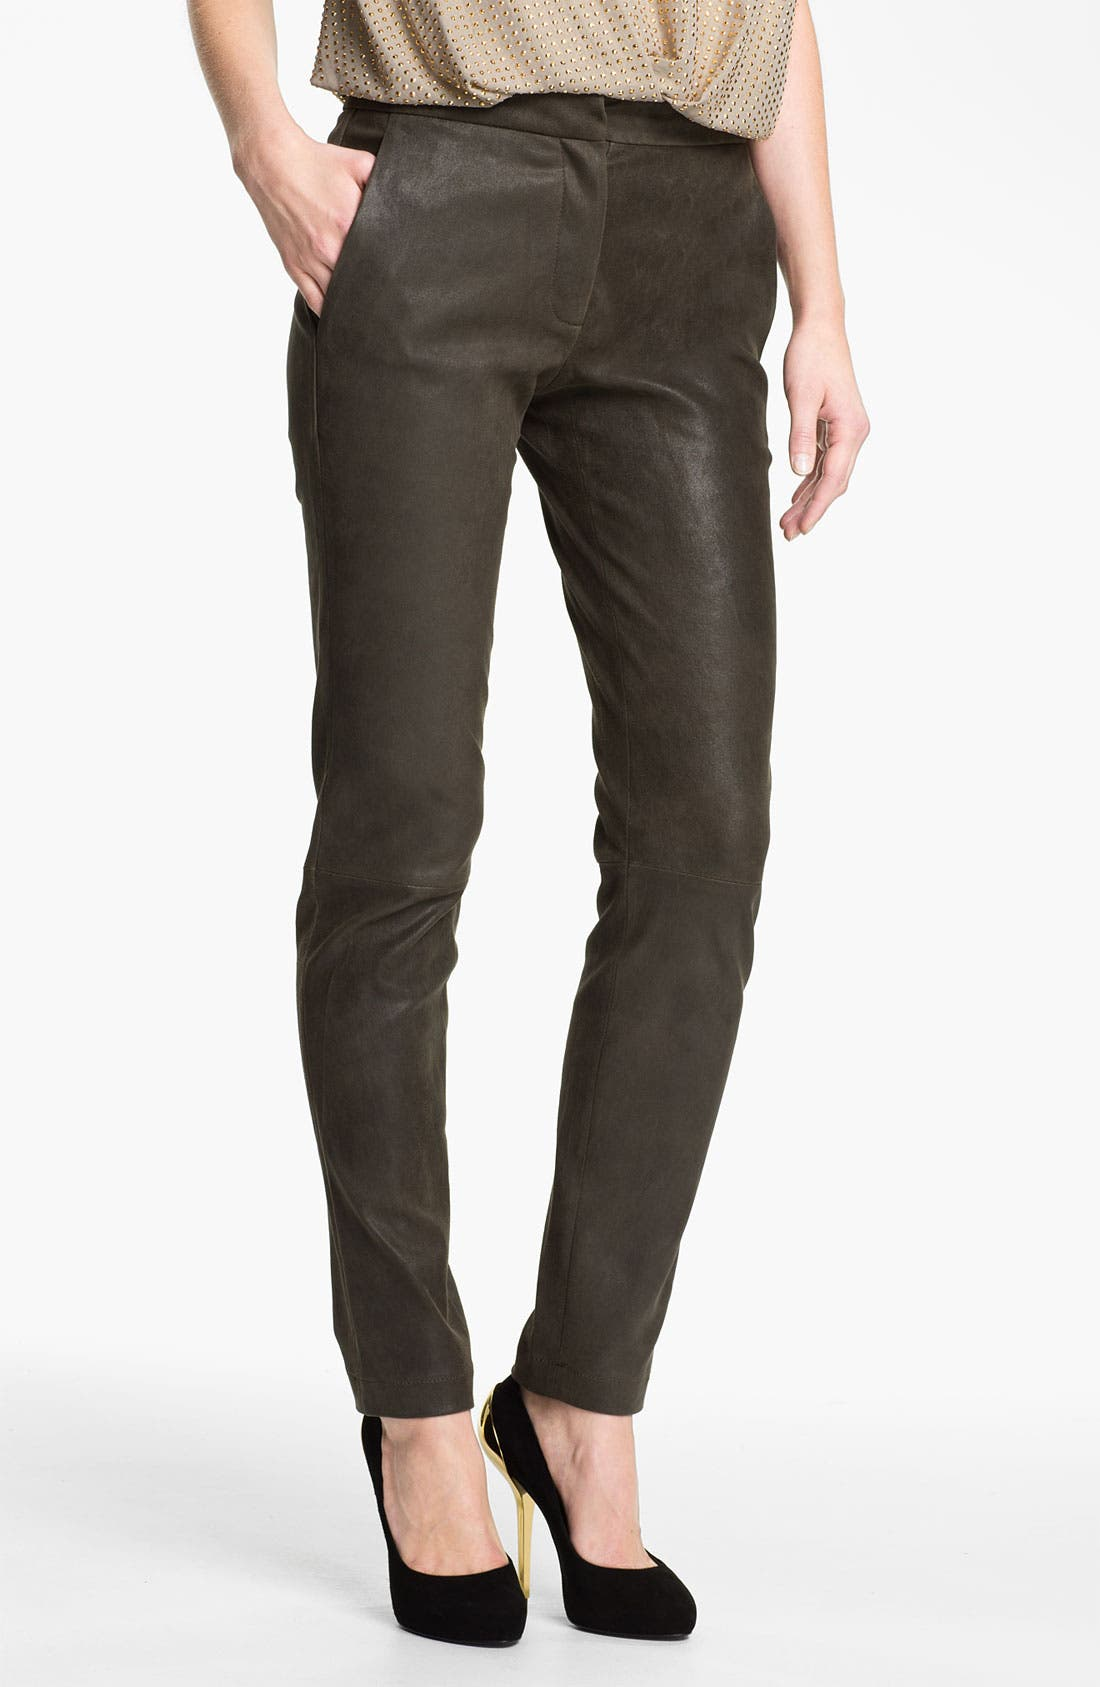 Alternate Image 1 Selected - L'AGENCE Stretch Leather Leggings